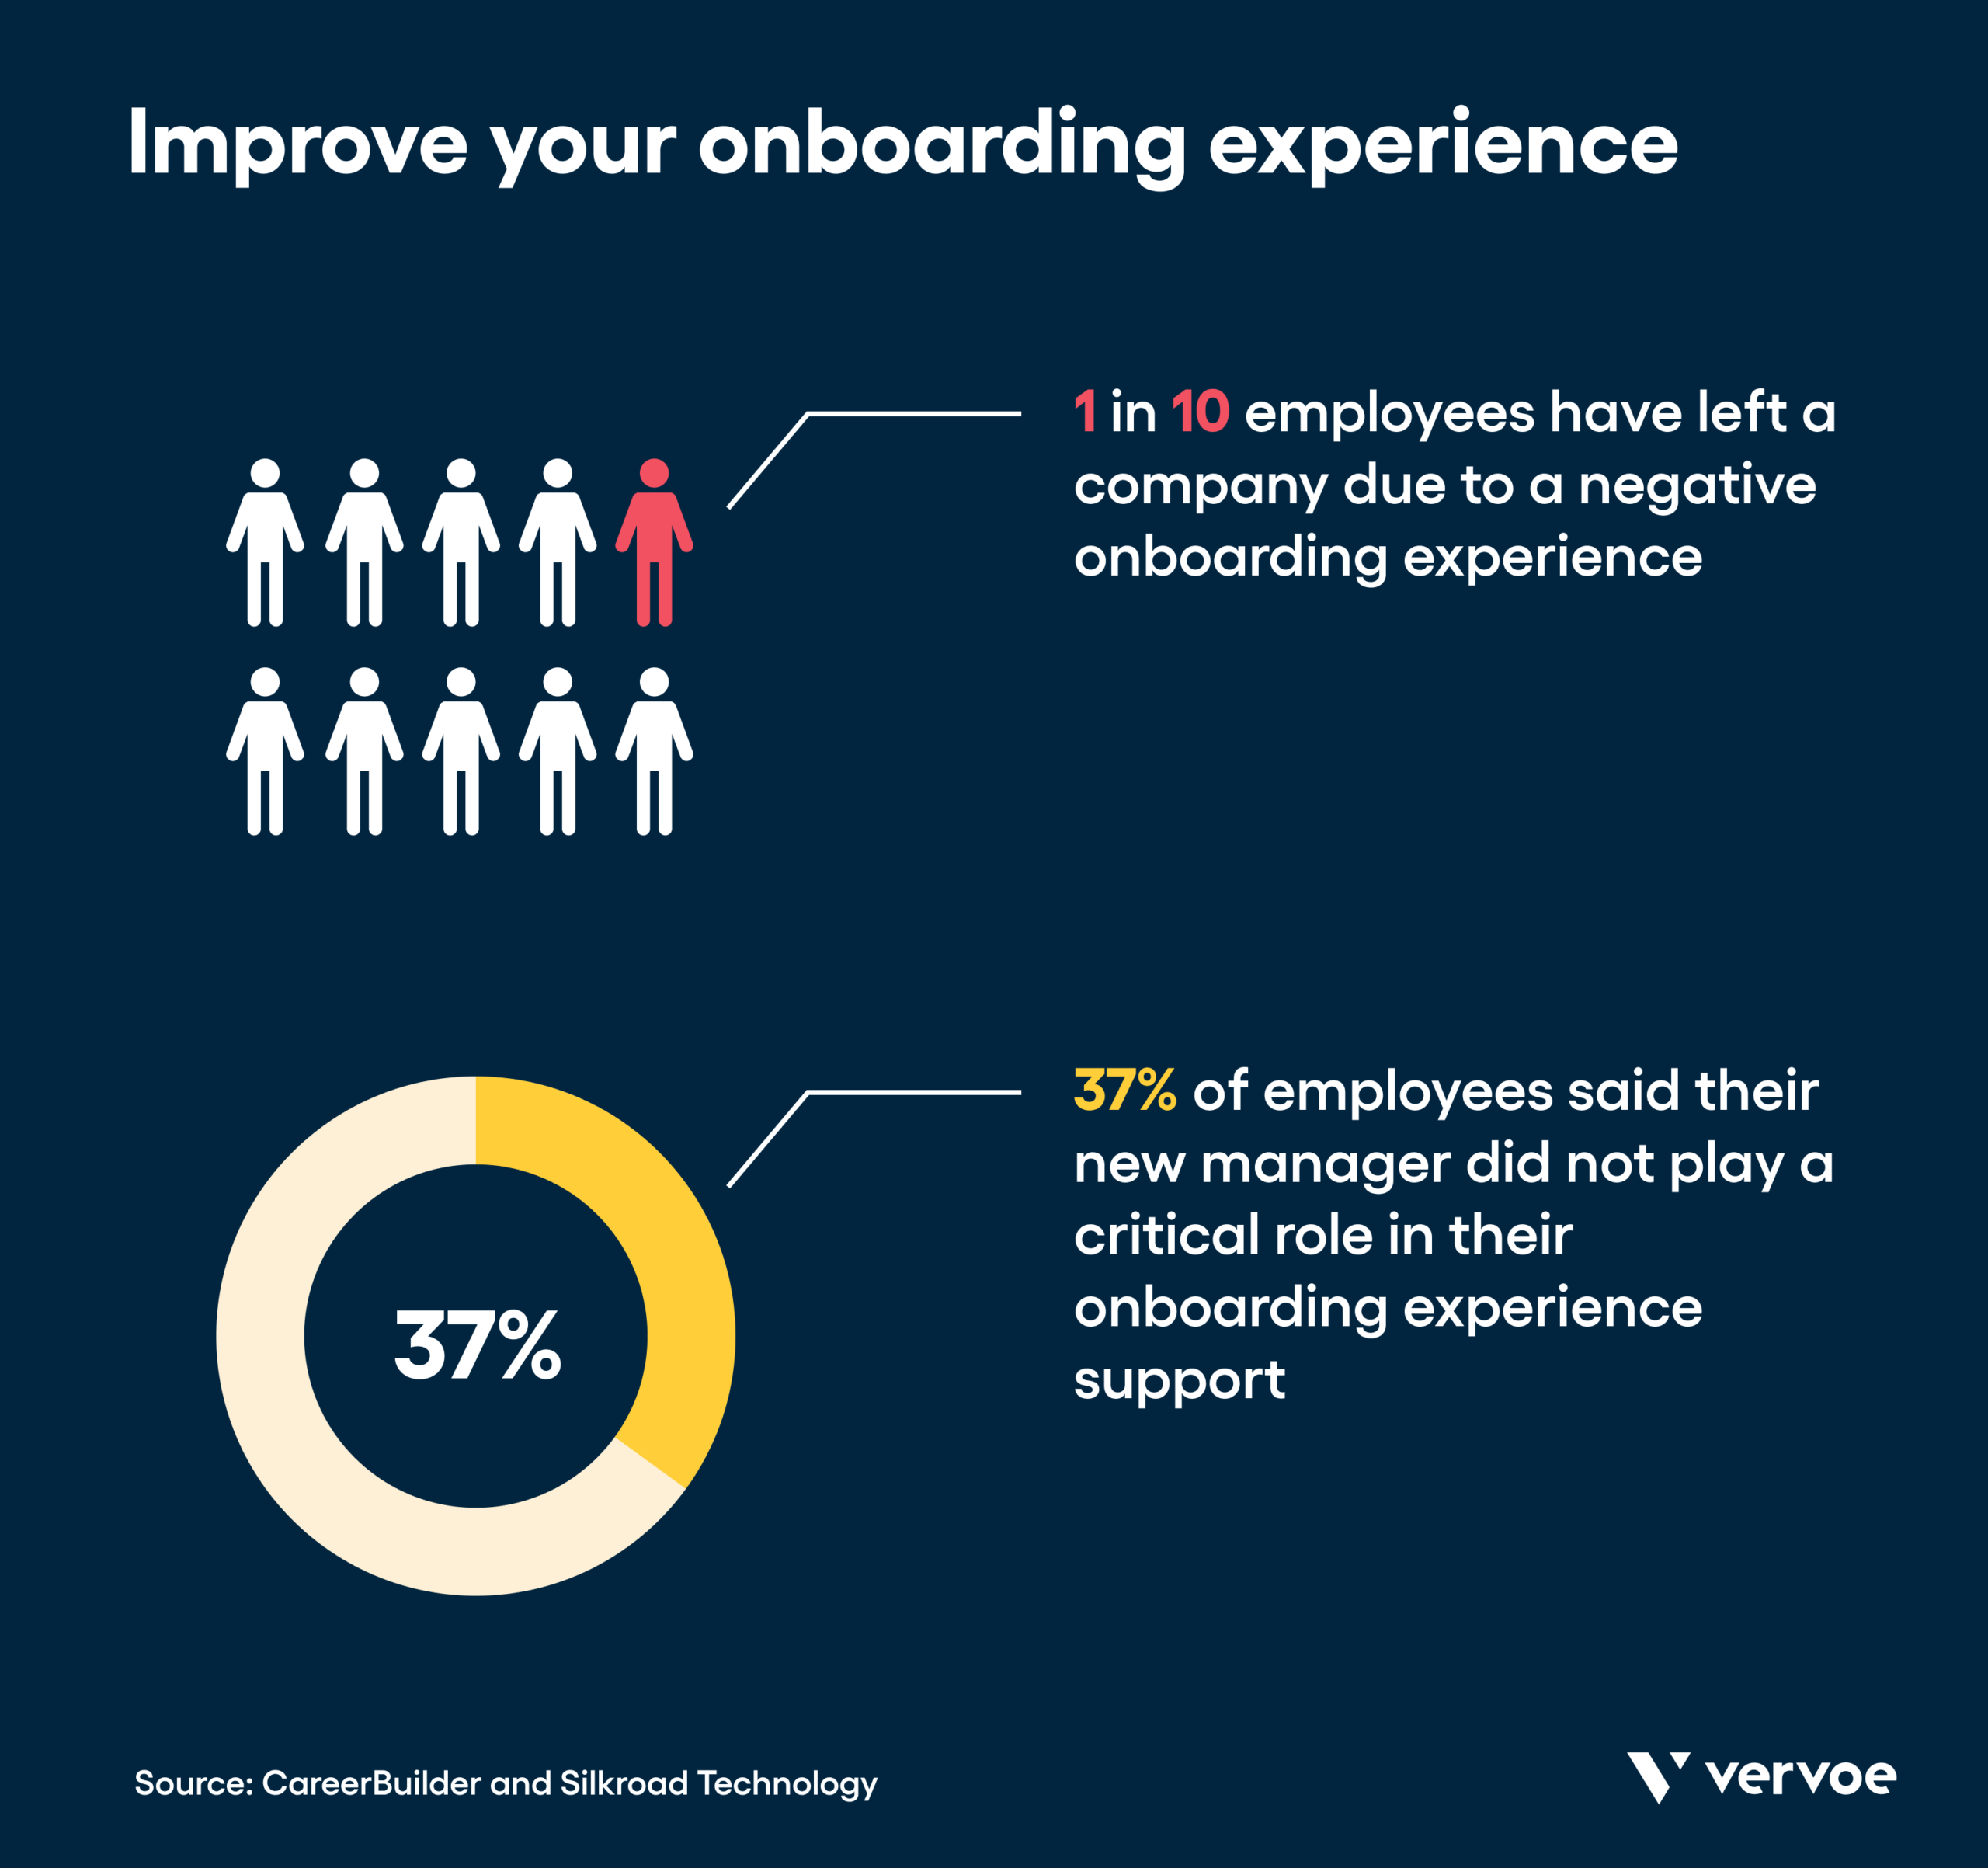 Infographic showing the importance of the onboarding experience